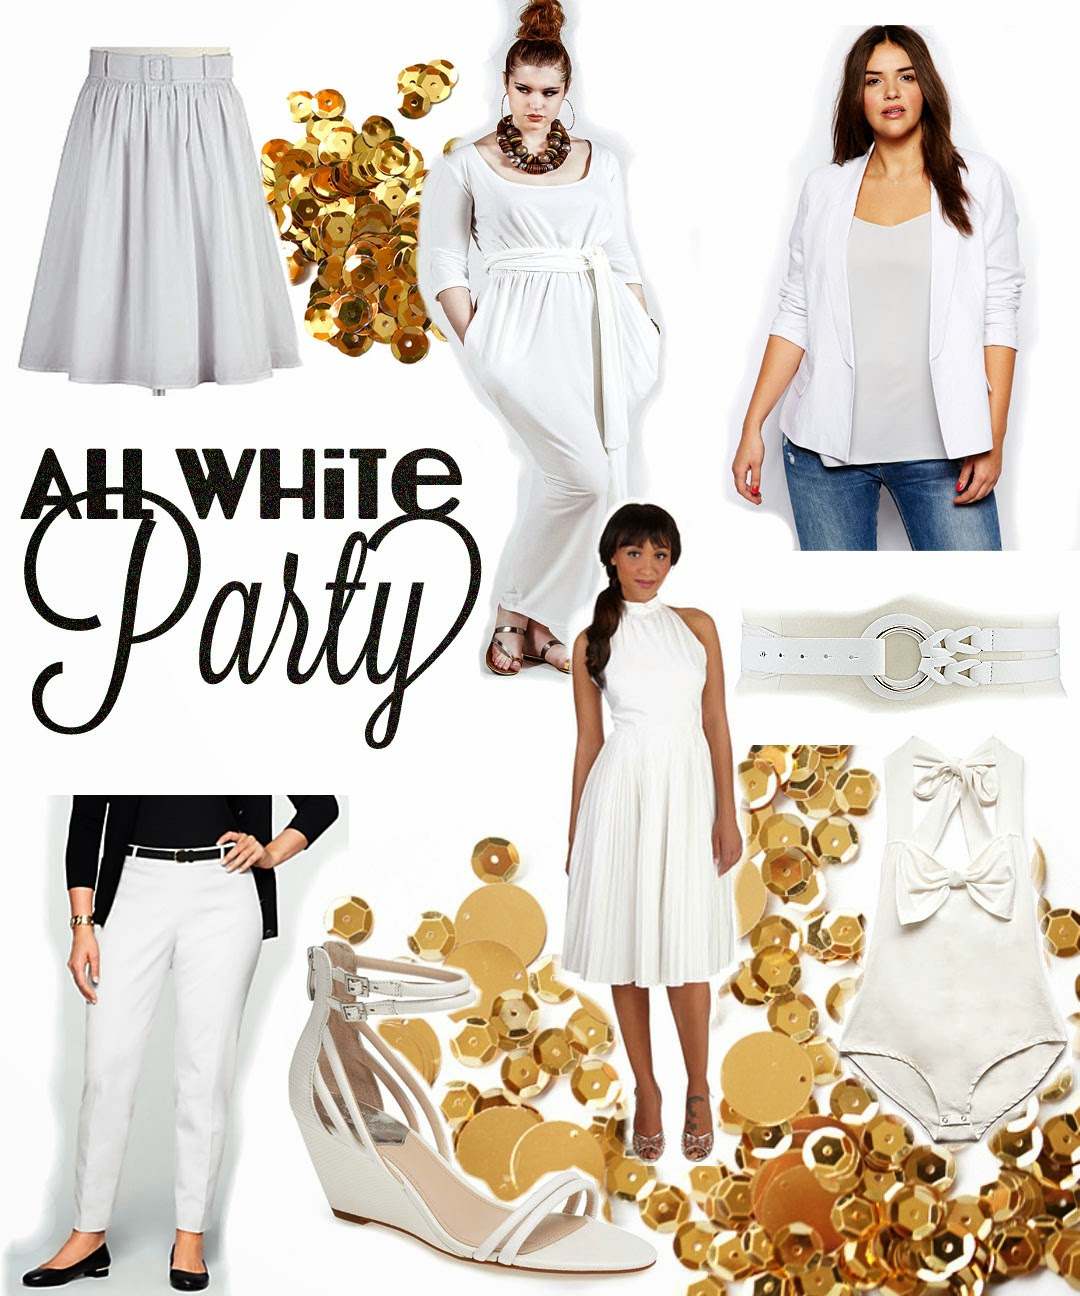 GarnerStyle | The Curvy Girl Guide: All White Party Picks